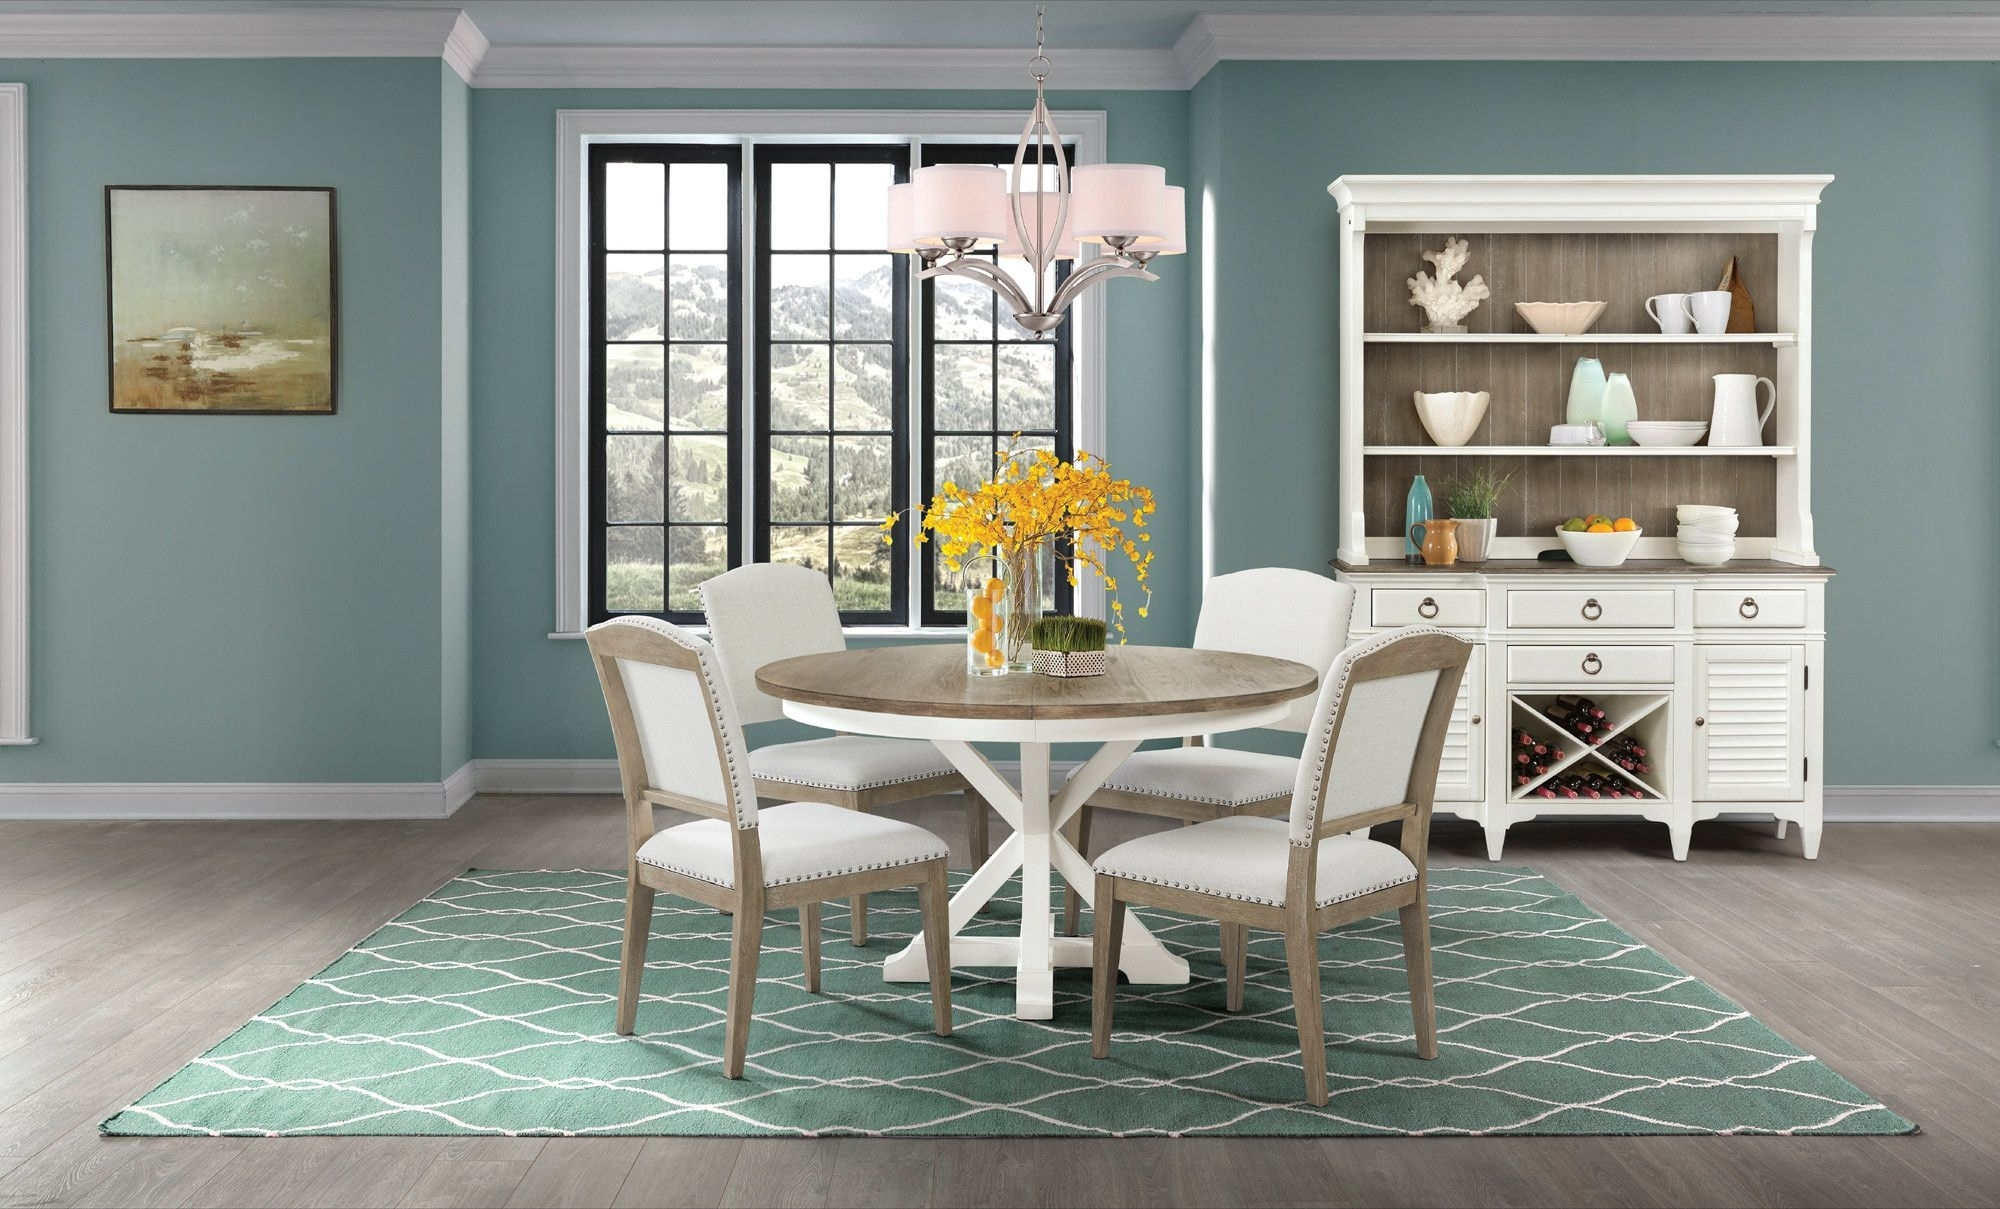 Myra Round Dining Table Set | Riverside Furniture | Home Gallery Intended For Latest Candice Ii 5 Piece Round Dining Sets With Slat Back Side Chairs (Image 12 of 20)